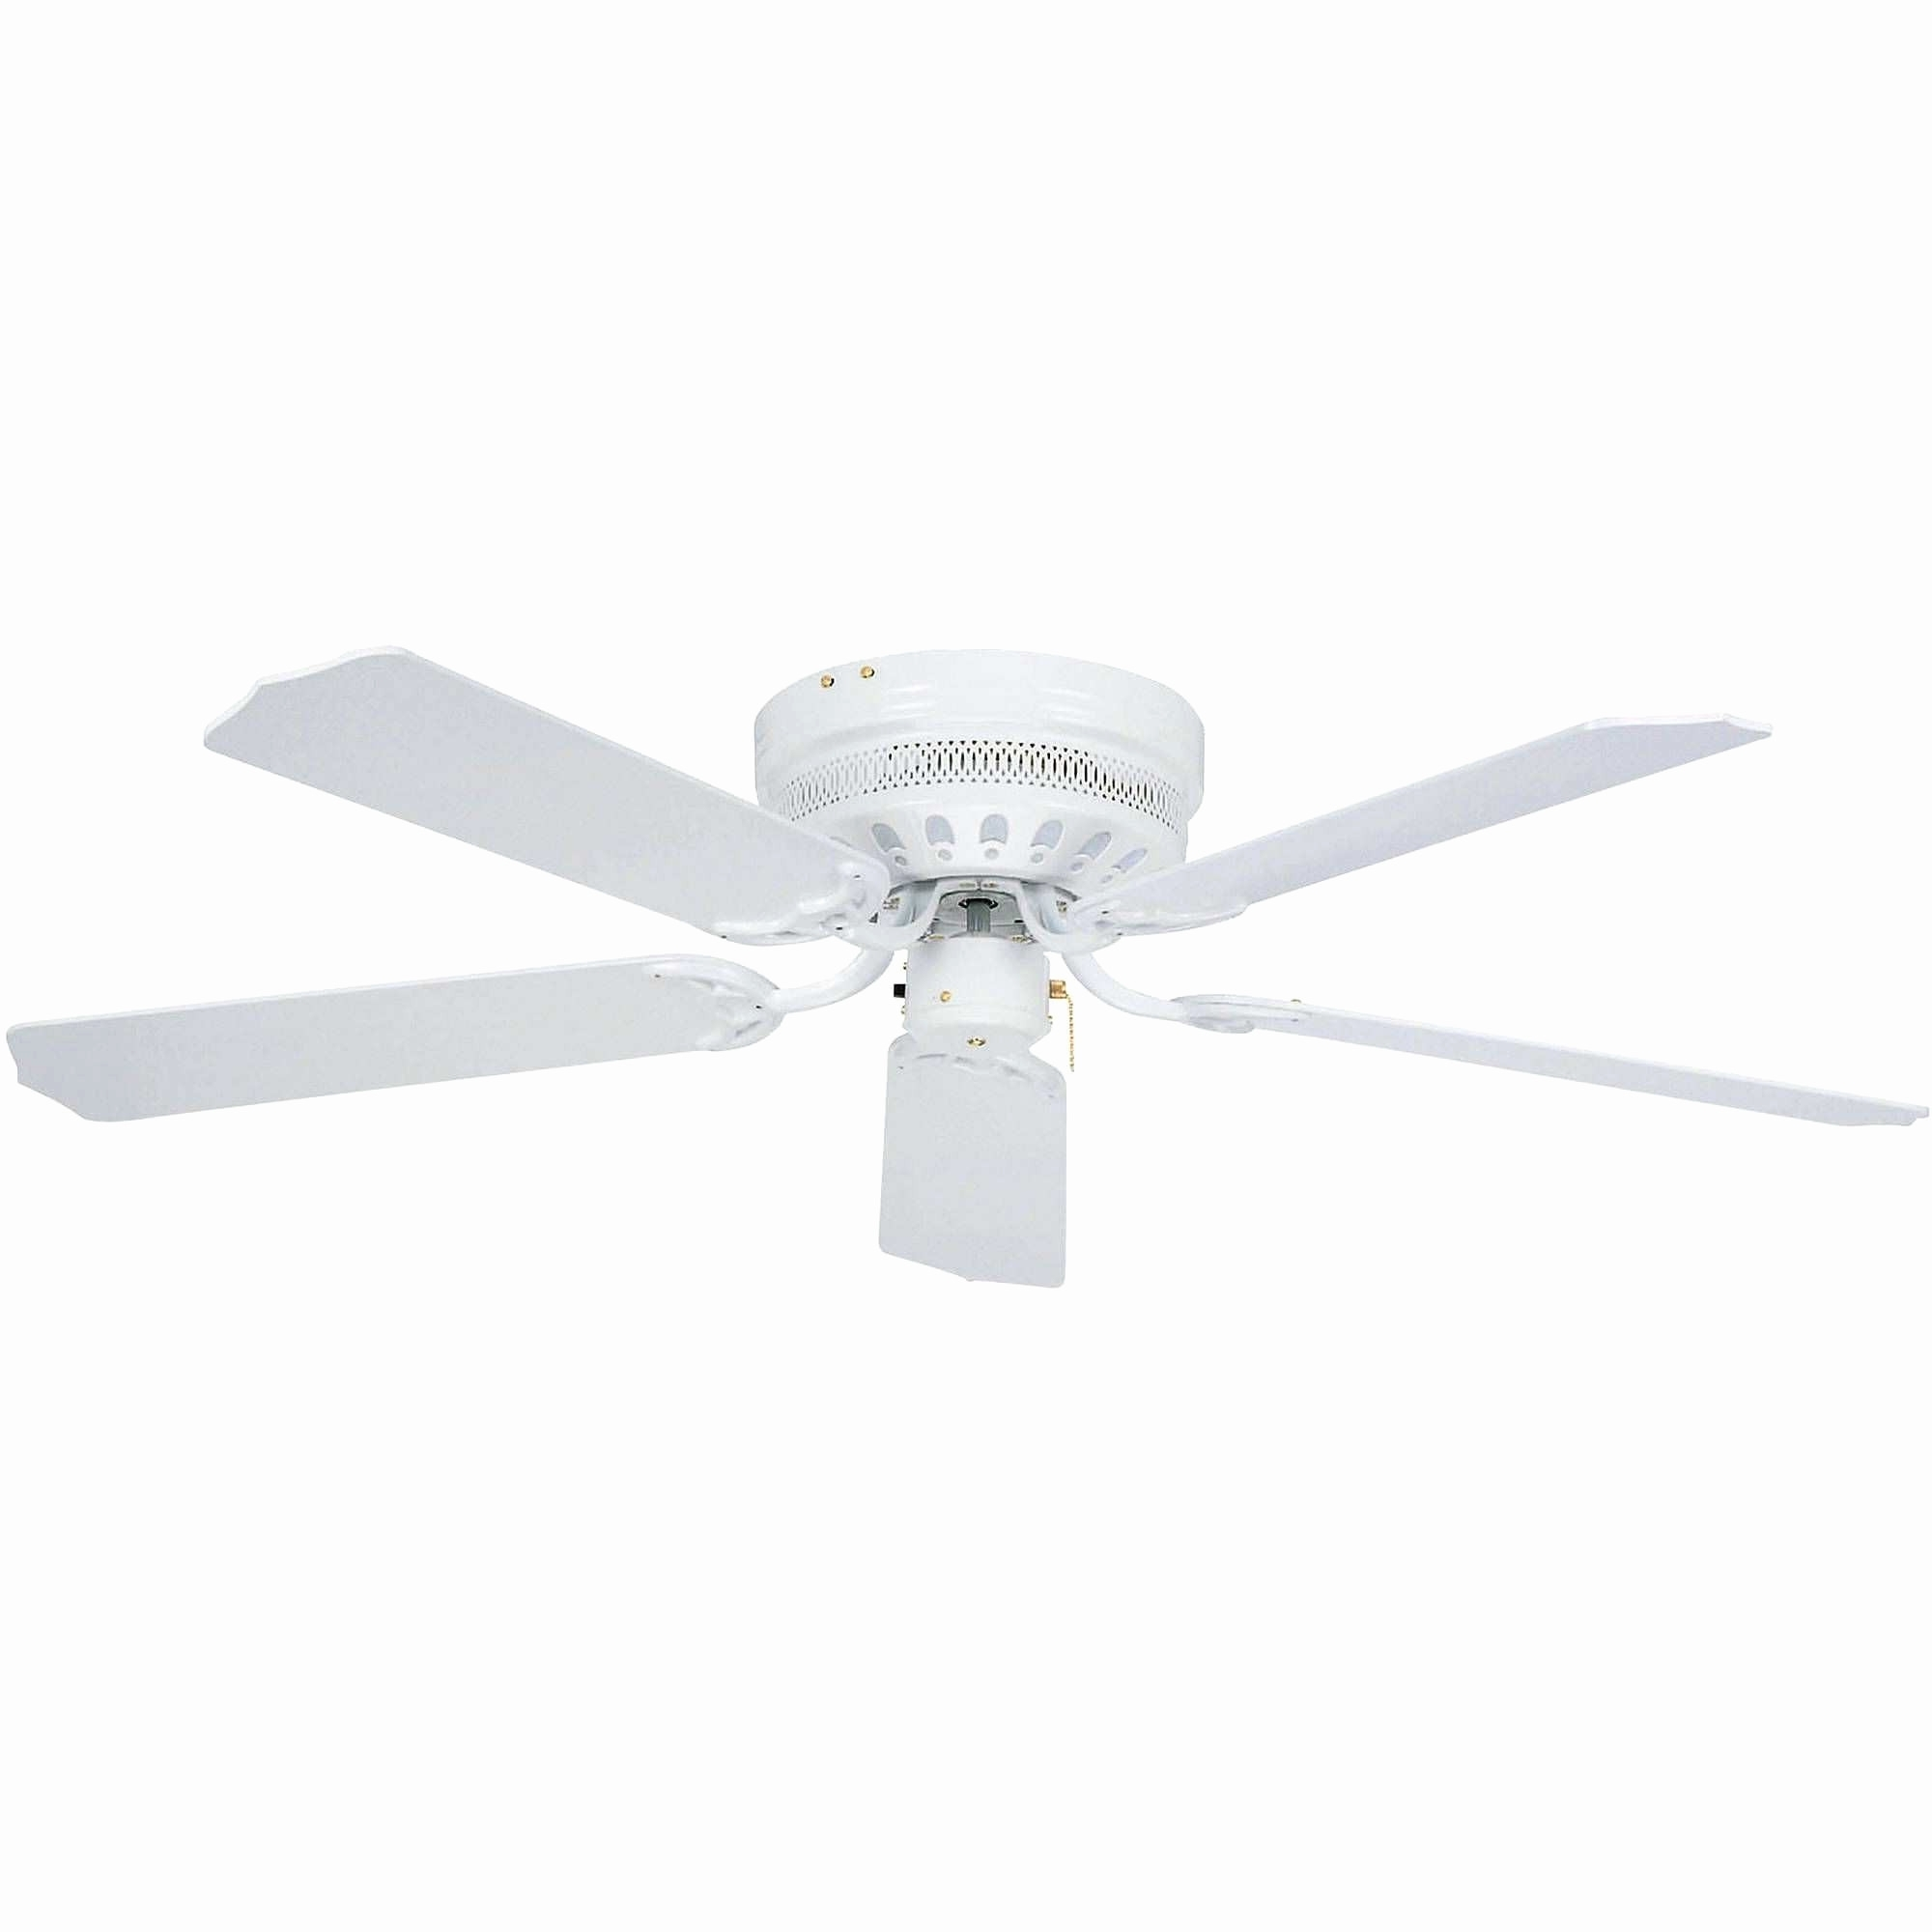 White Outdoor Ceiling Fan With Light Luxury Outdoor Ceiling Fans For 2018 Outdoor Ceiling Fans At Walmart (View 20 of 20)